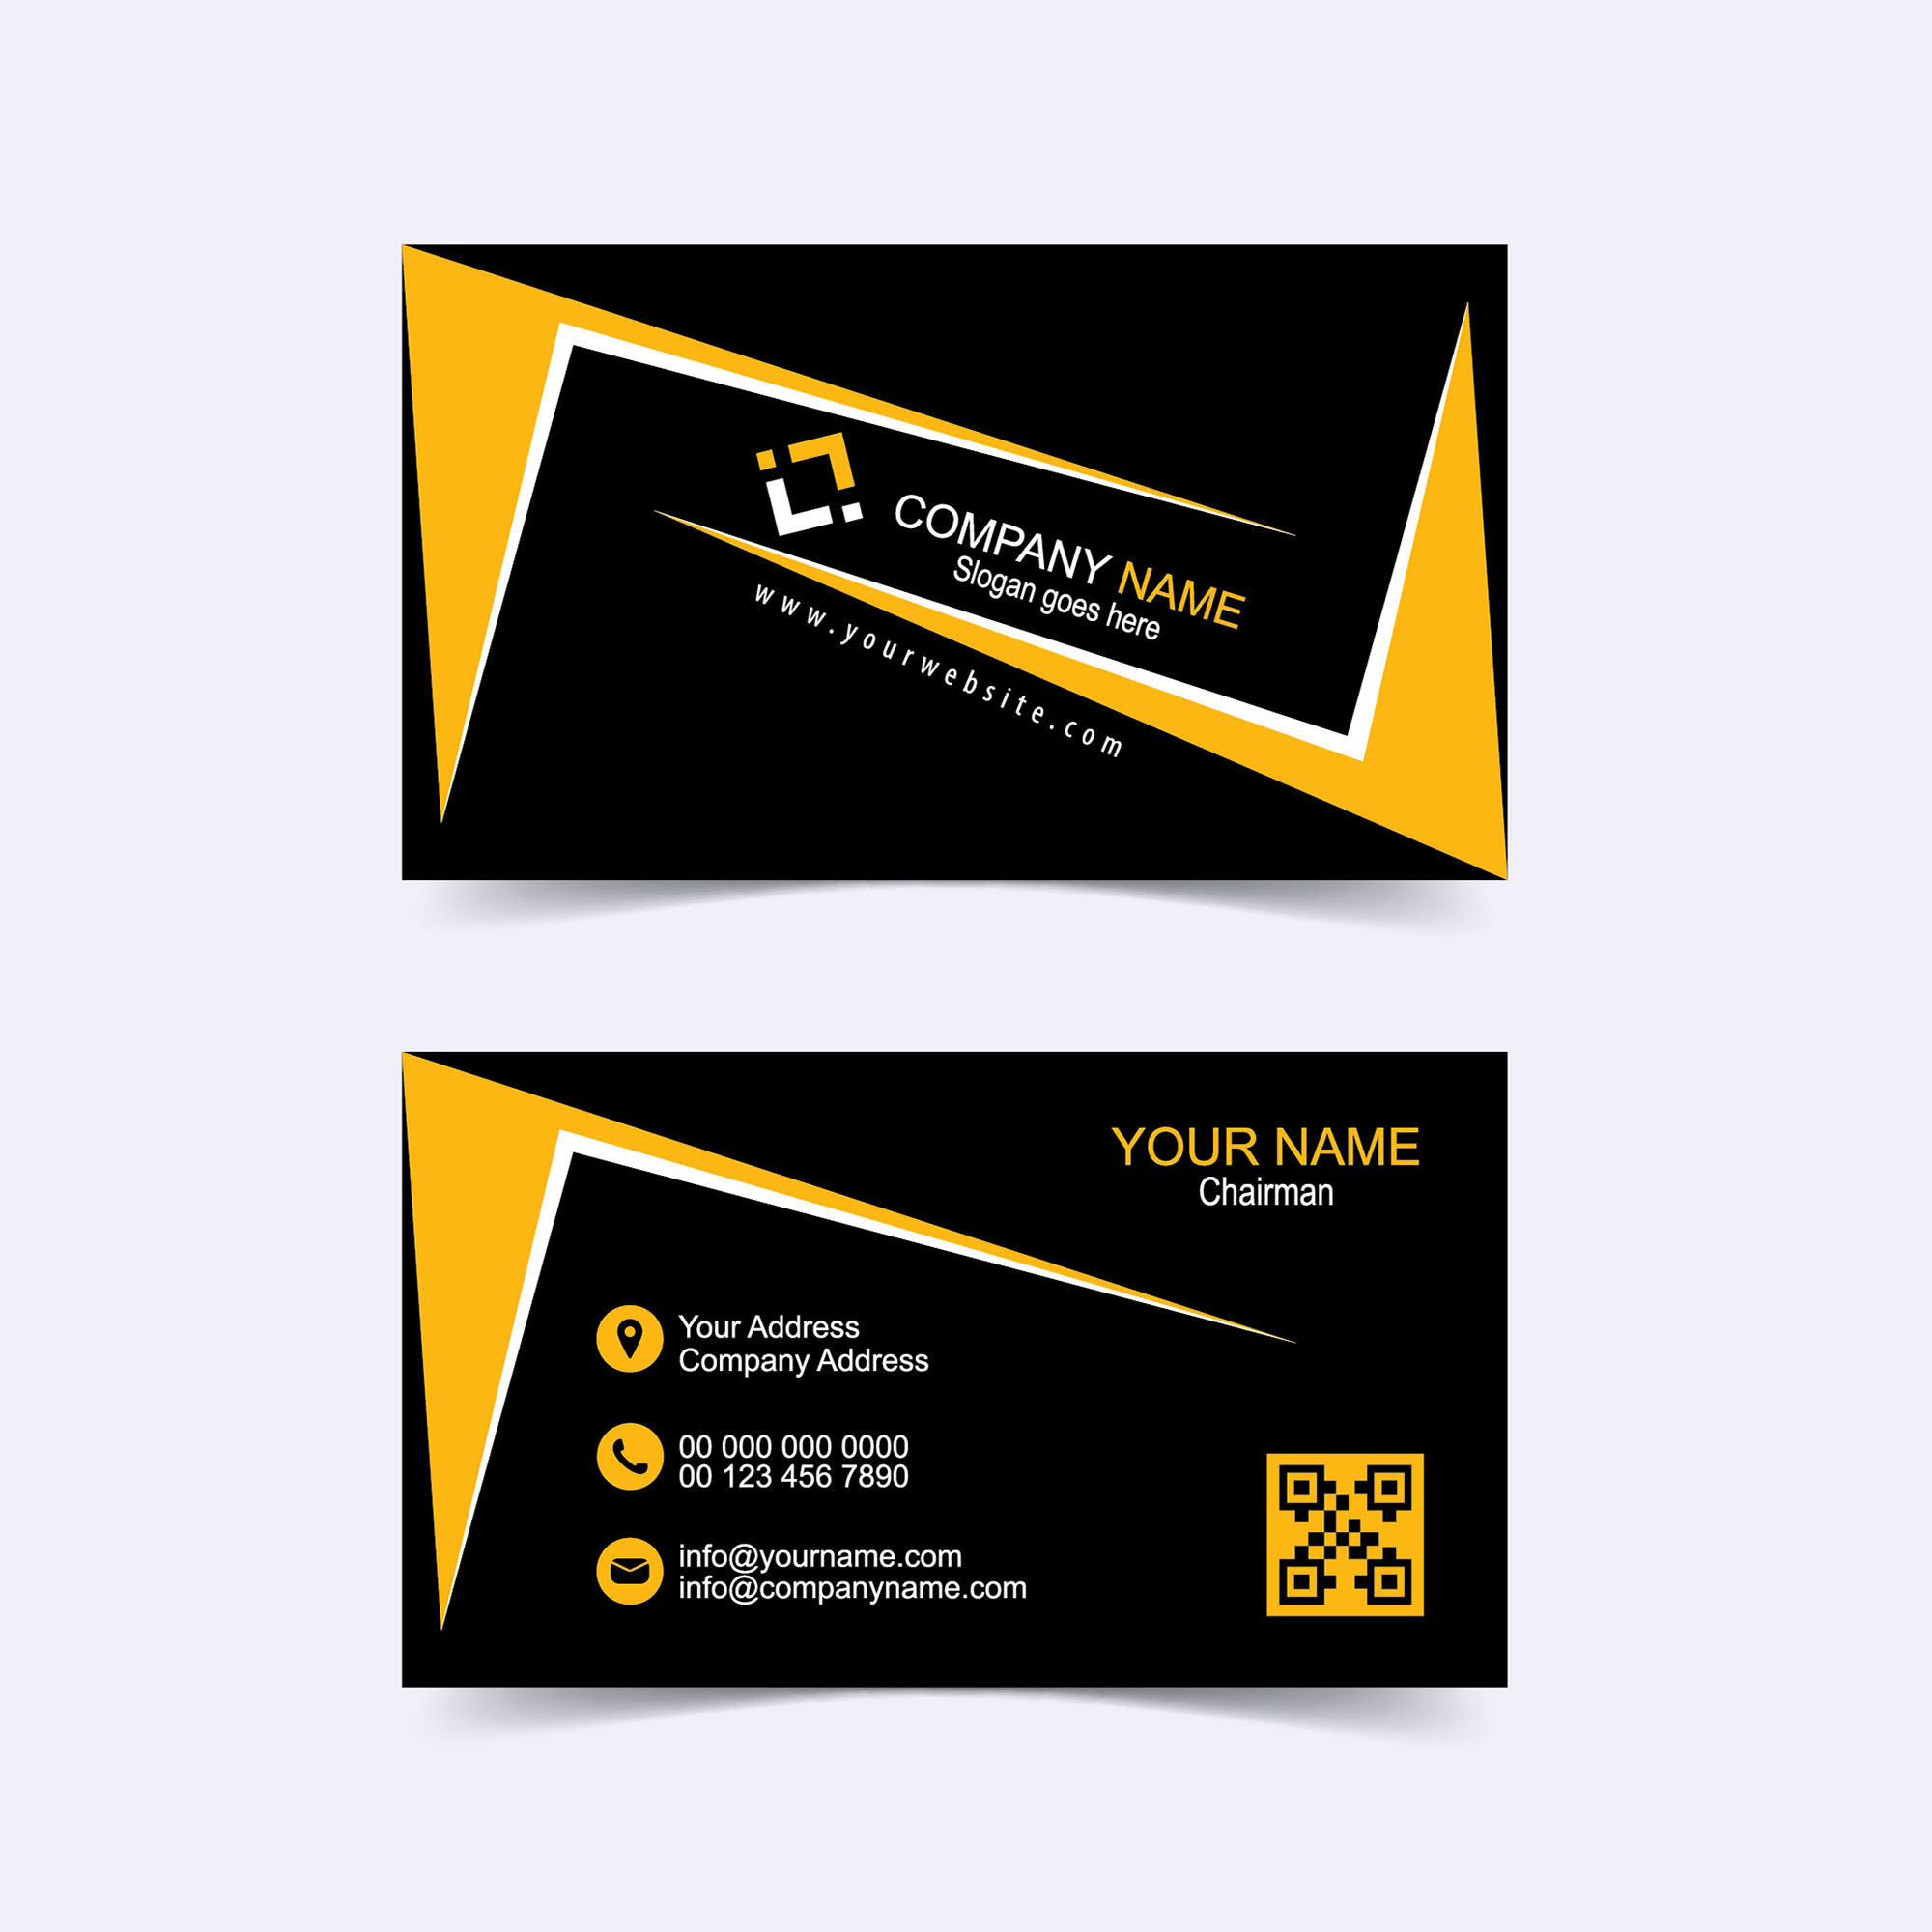 Modern business card template vector free download wisxi business card business cards business card design business card template design templates fbccfo Gallery